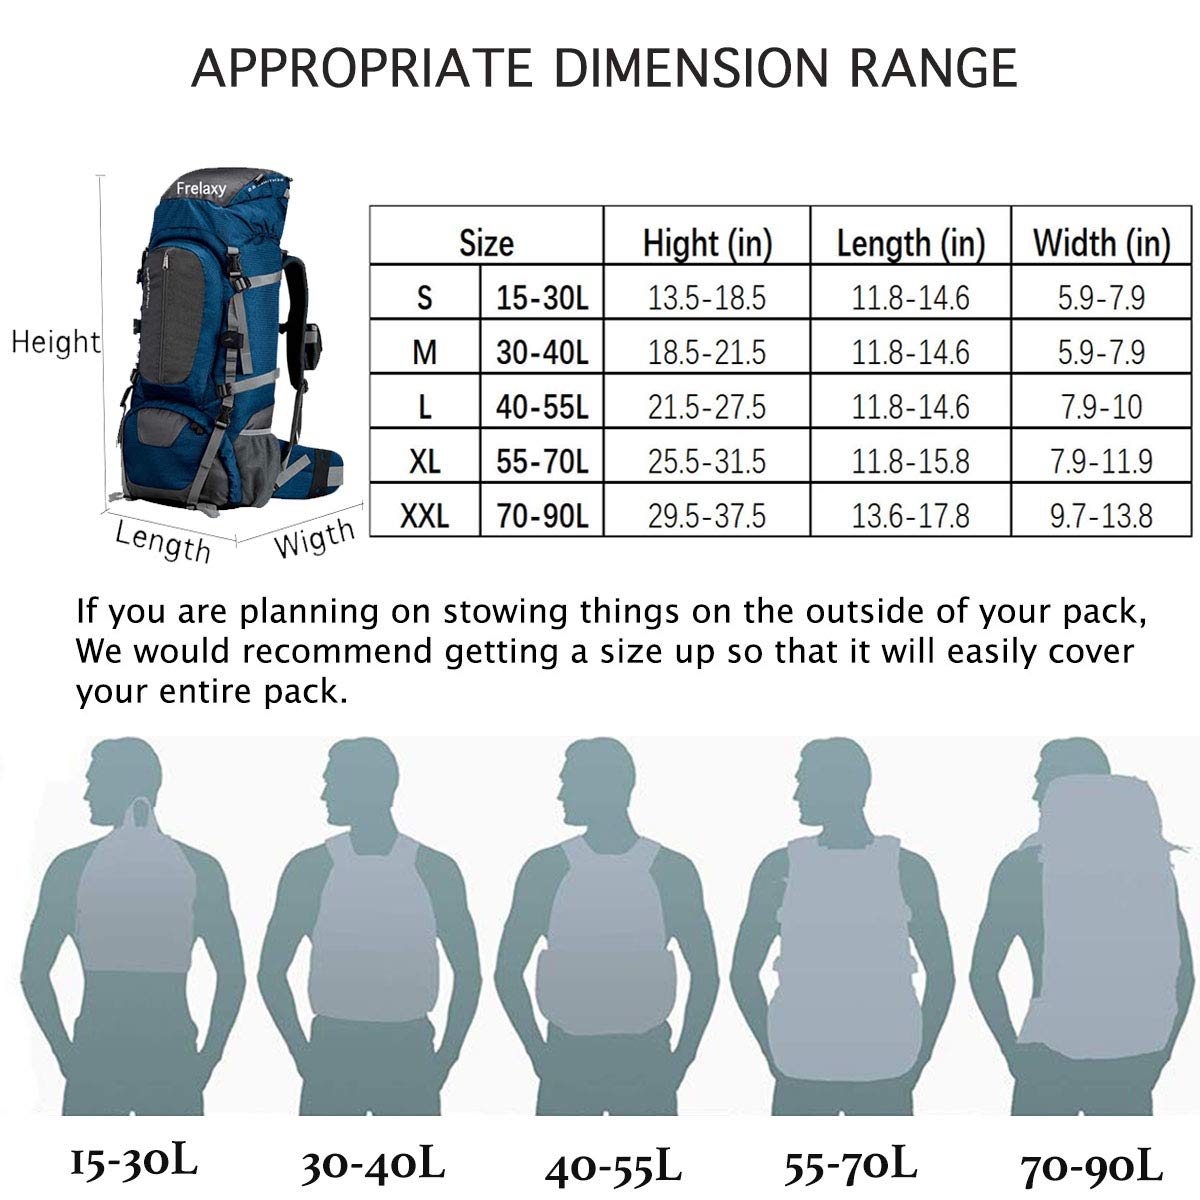 Frelaxy Waterproof Backpack Rain Cover for (15-90L), Upgraded Design & Silver Coated, for Hiking, Camping, Traveling, Outdoor Activities (Army Green, M) by Frelaxy (Image #6)